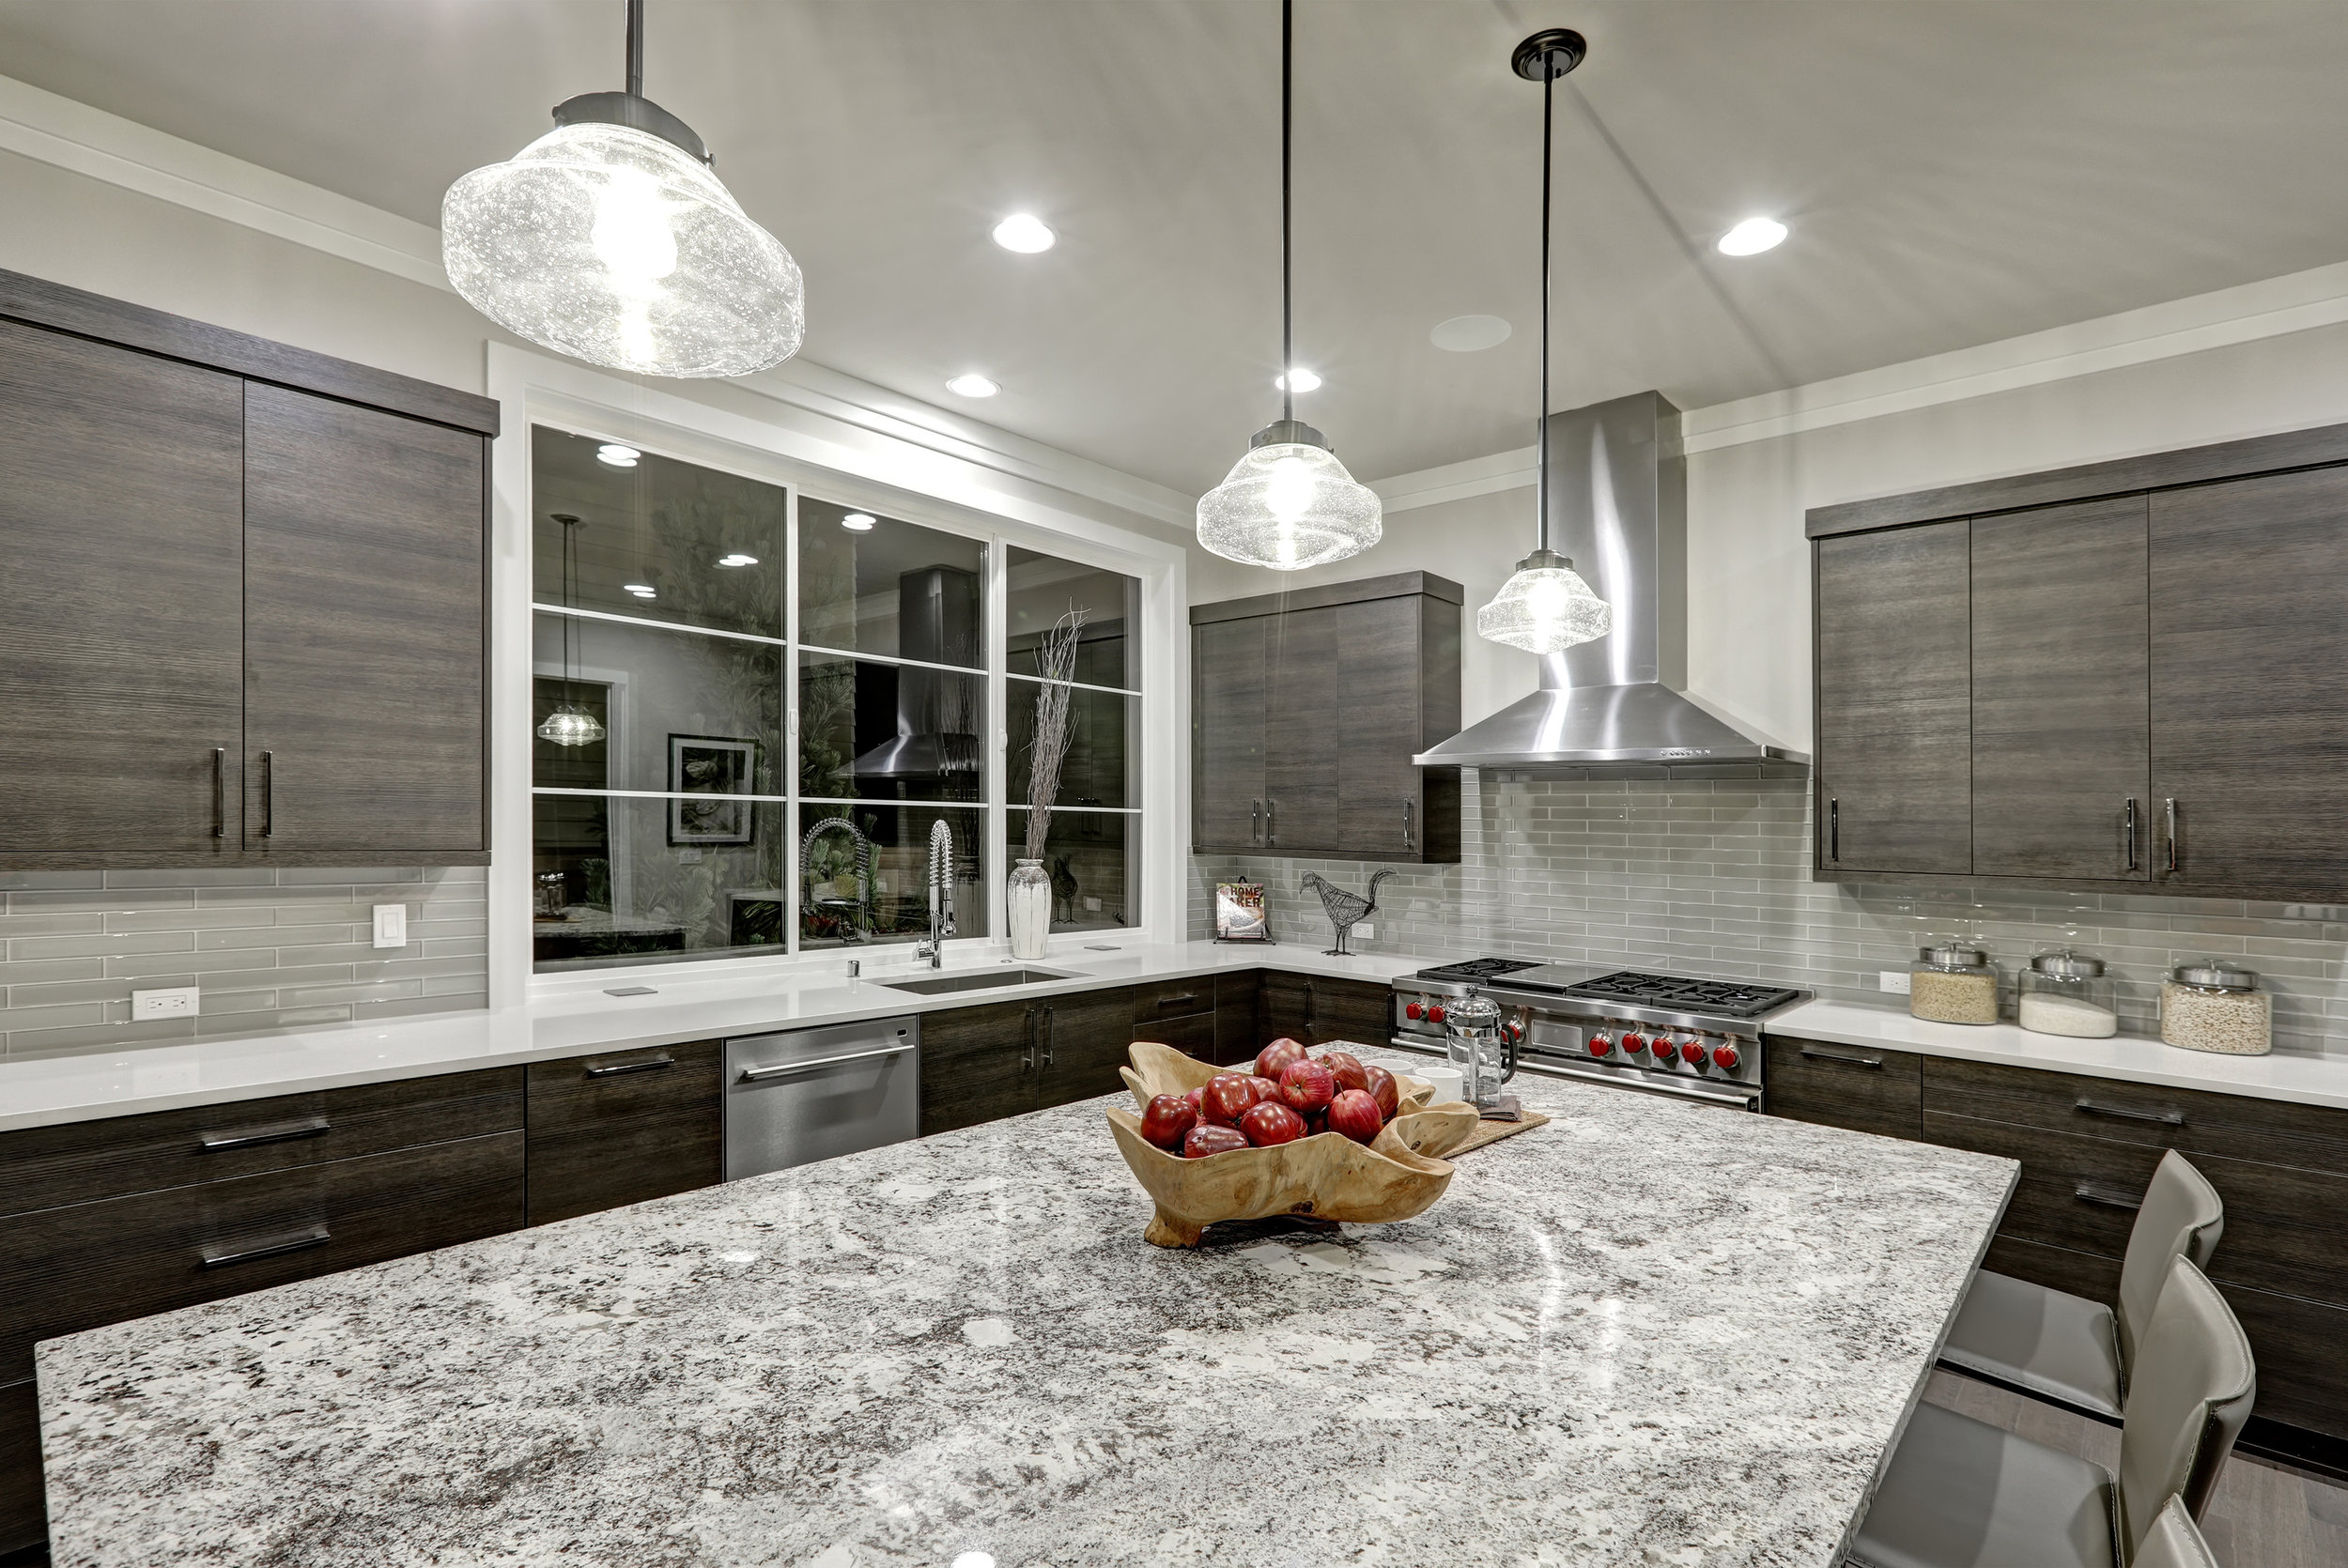 COUNTER TOPS - CLICK HERE